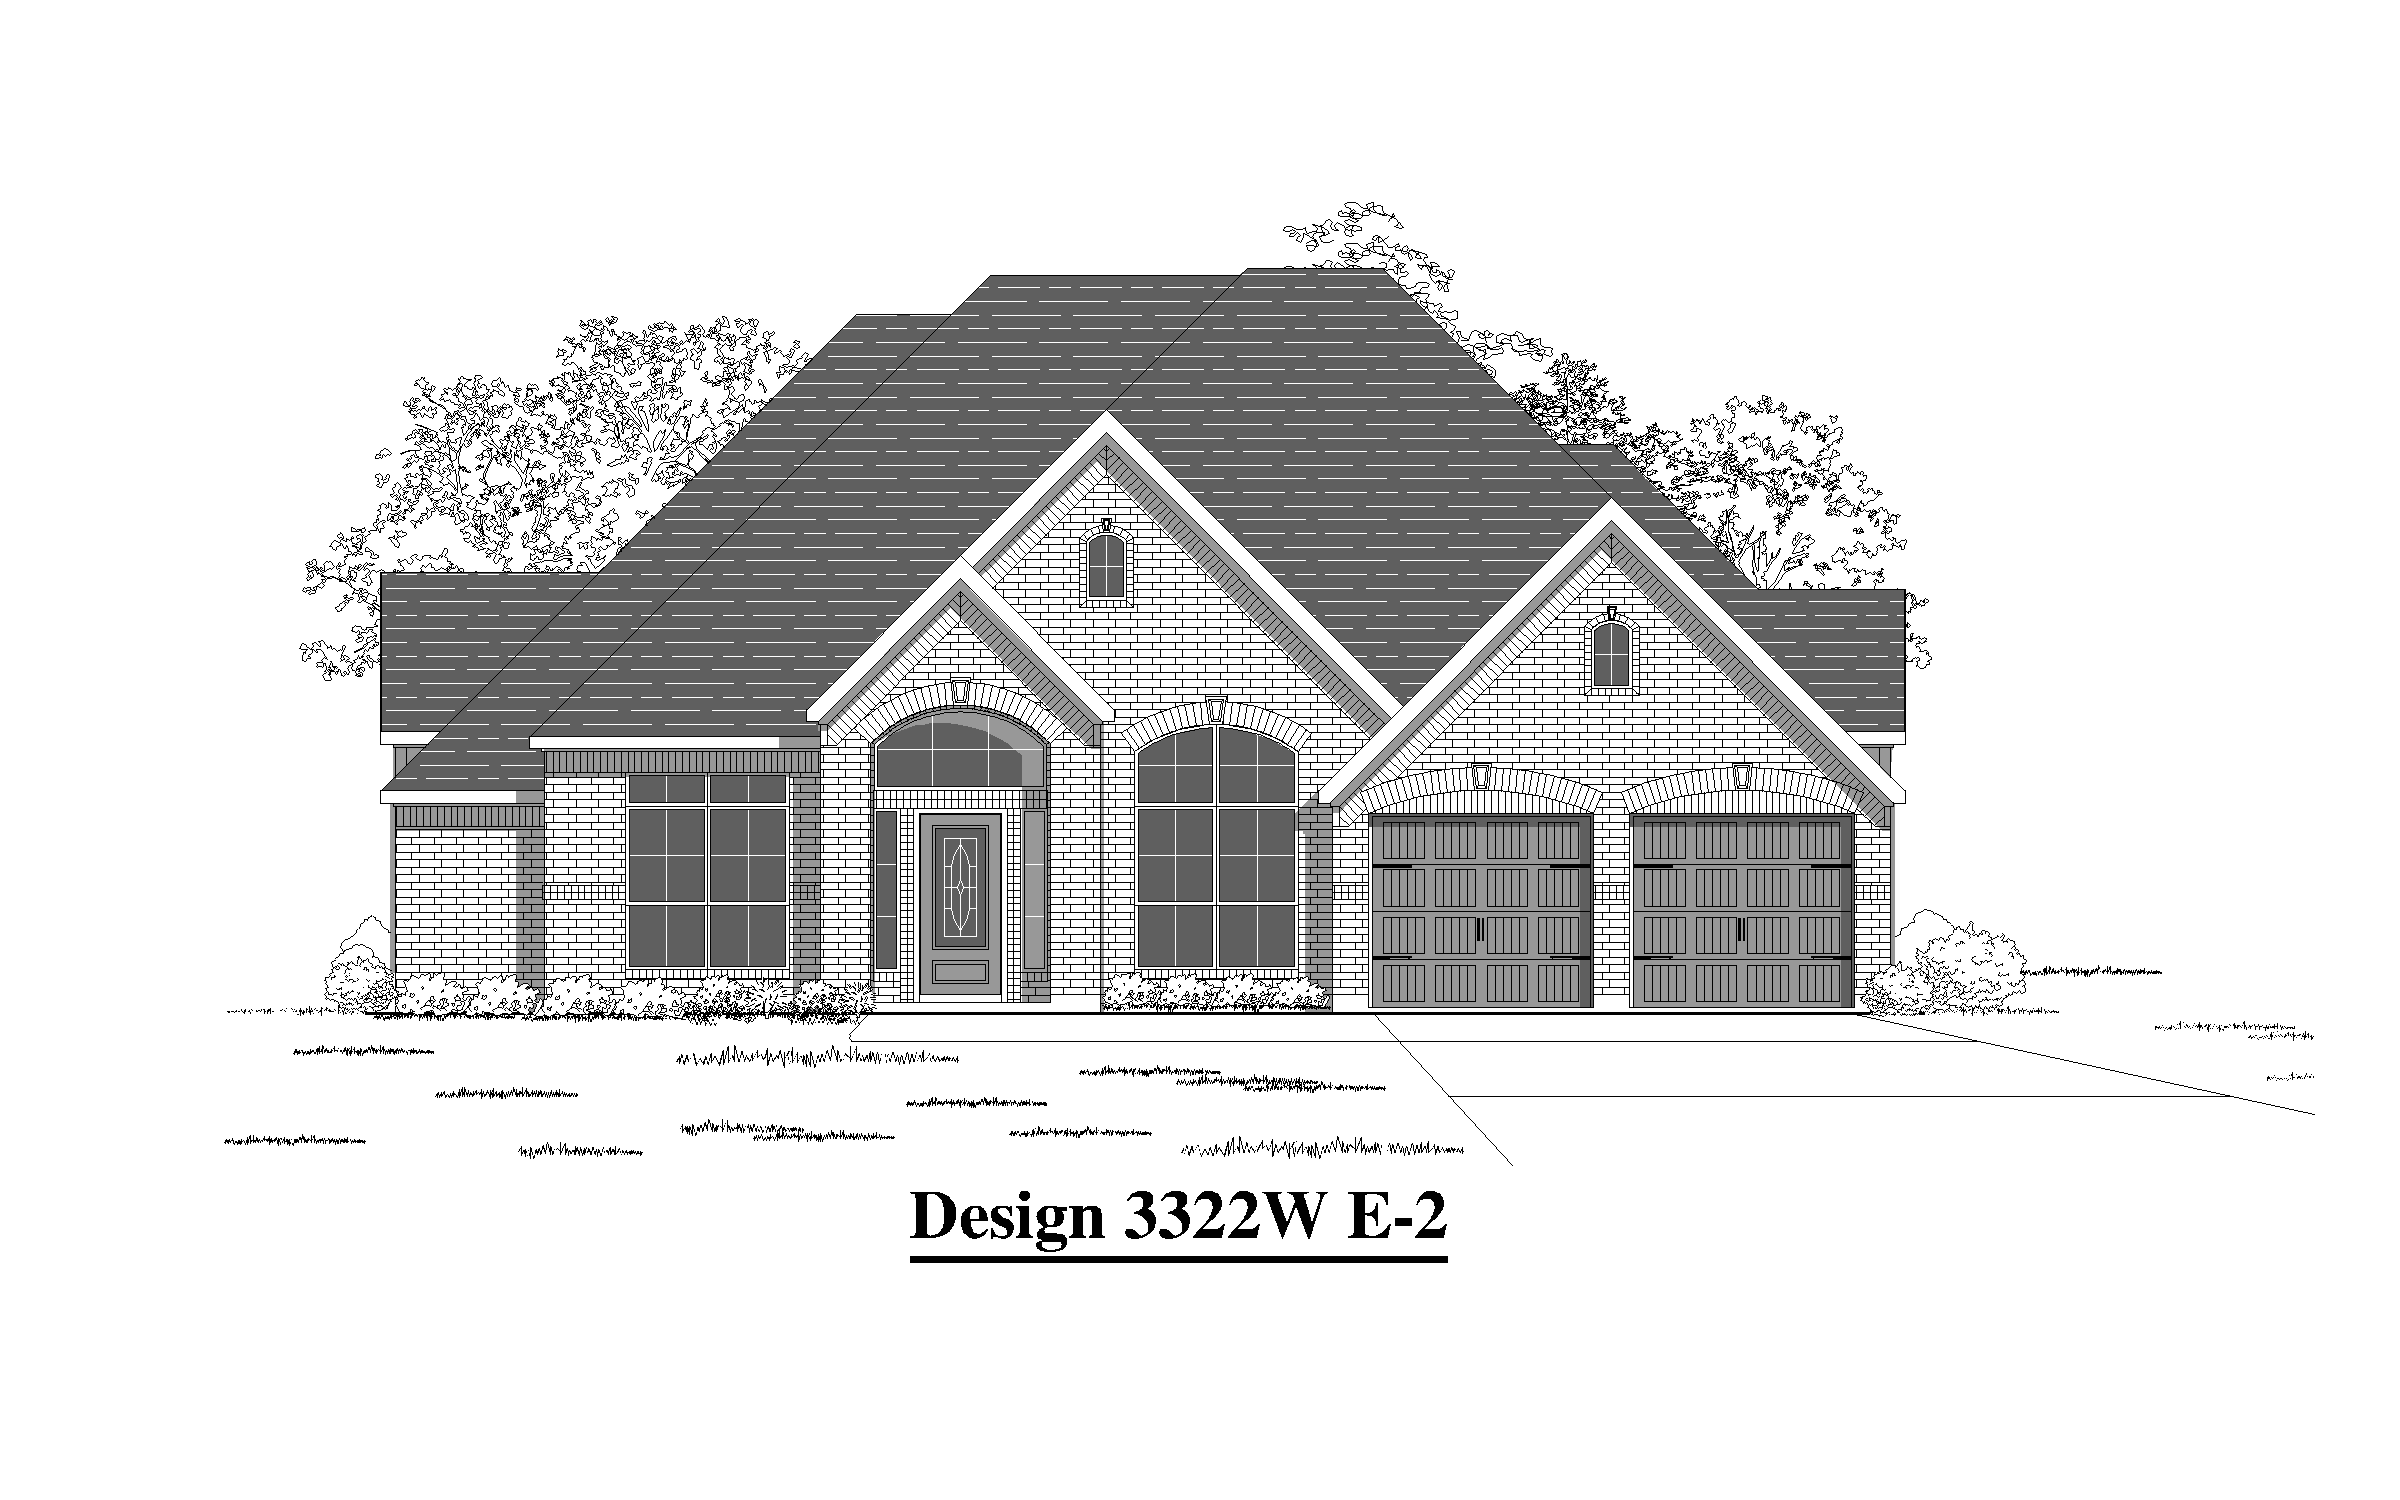 Perry homes model 4189